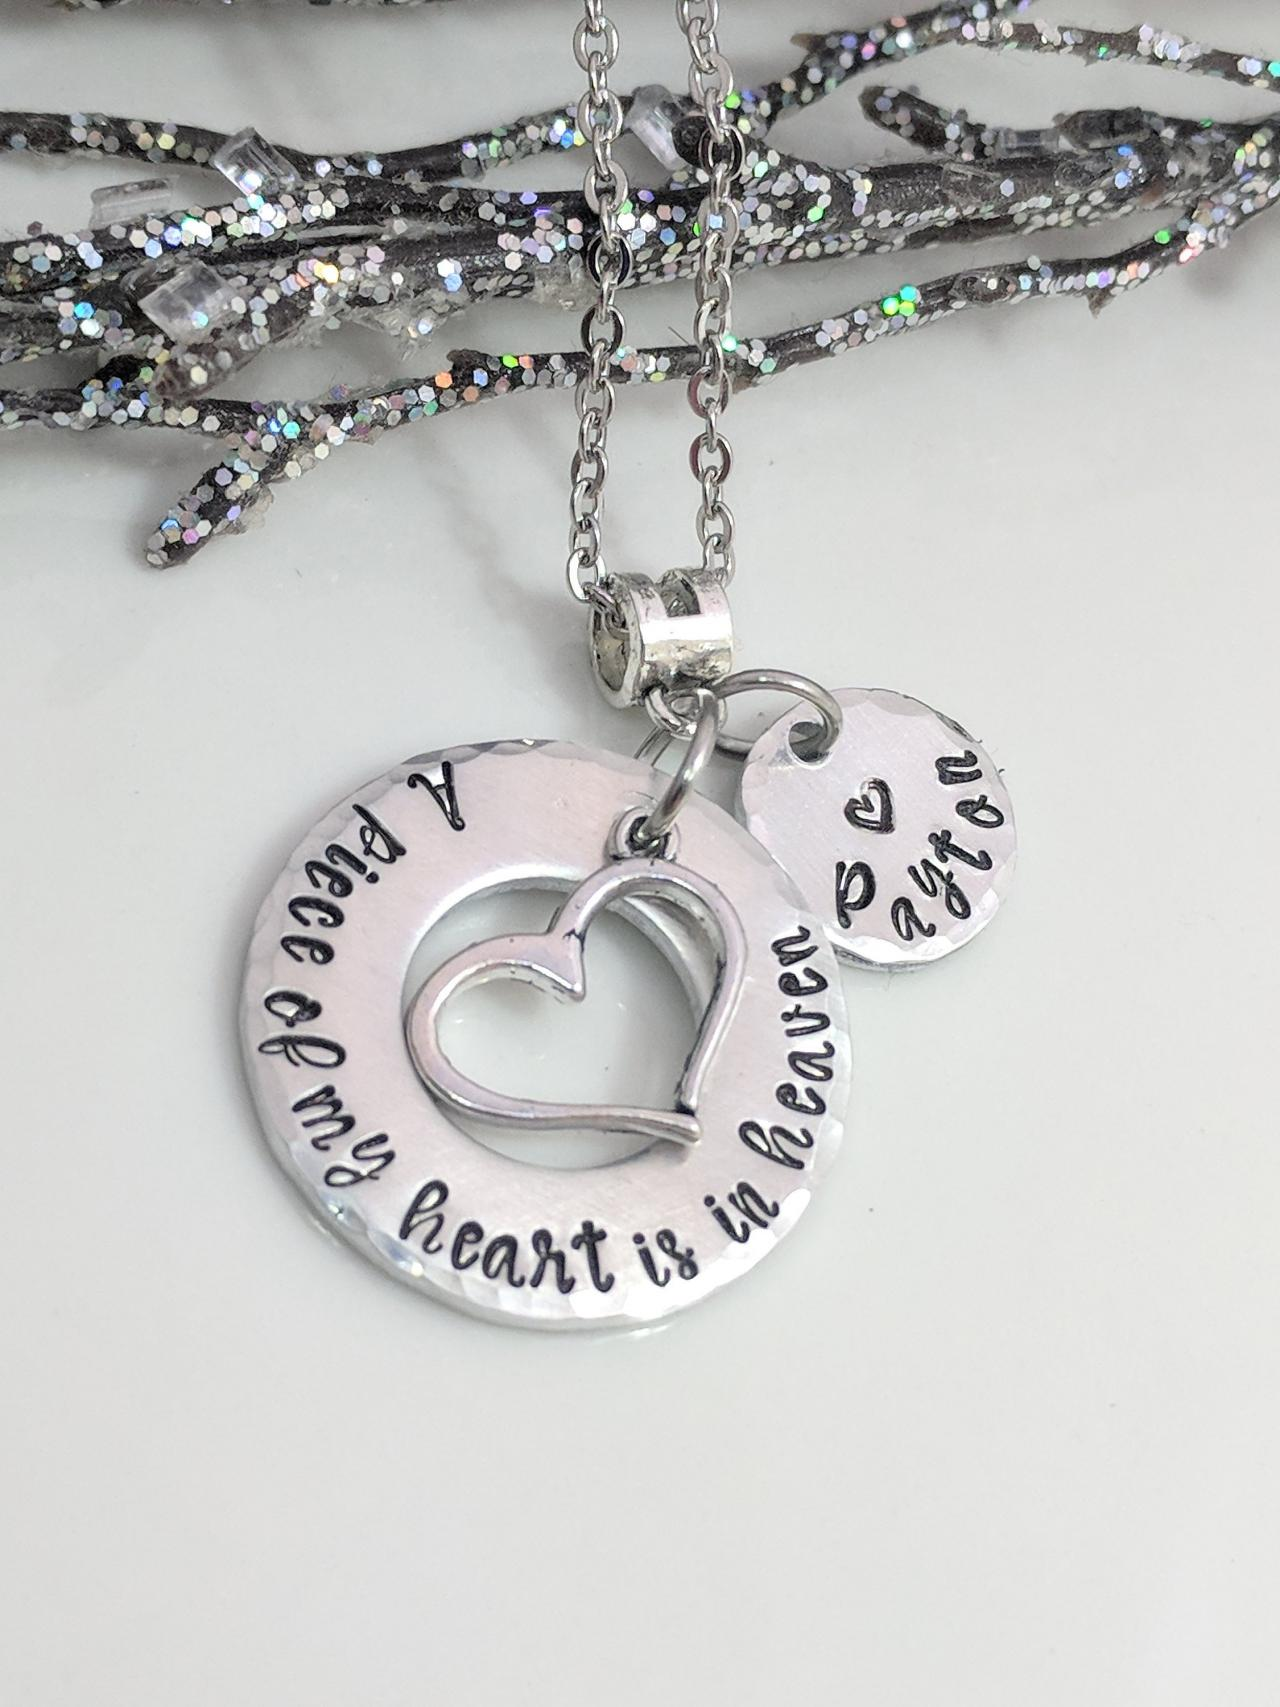 Hand Stamped Necklace Loss Jewelry- A Piece Of My Heart Hand Stamped Jewelry- Sympathy Gift- Remembrance Jewelry- Customized Memorial Necklace- Heart Jewelry- Keepsake Necklace- Gift